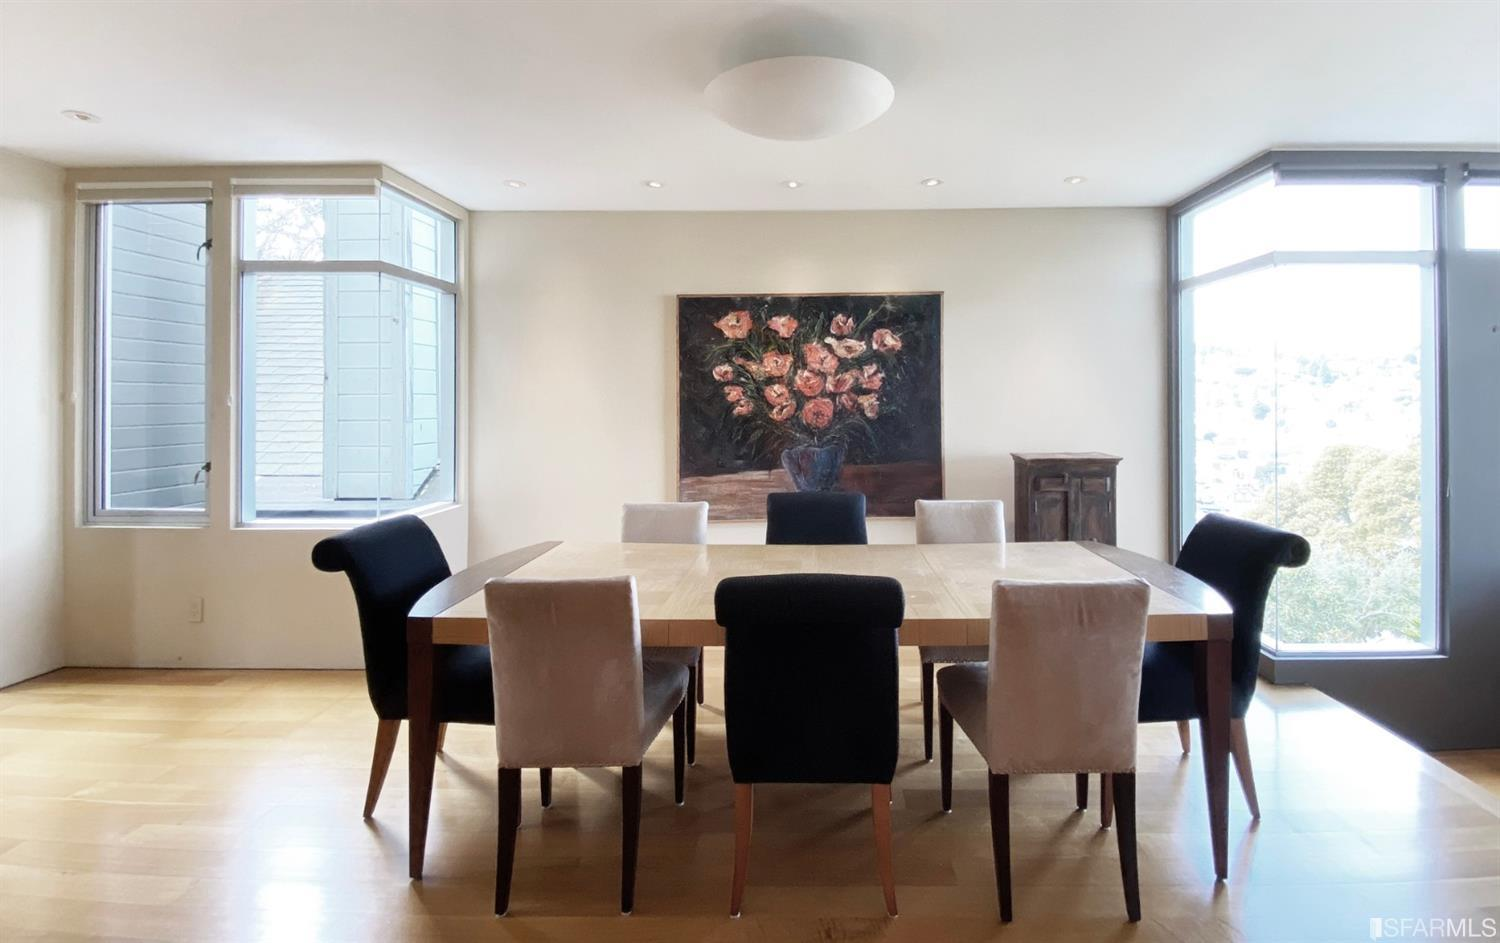 Expansive dining room easily accommmodates a table for 8-10 people and is flanked by the living room on one side and the step do